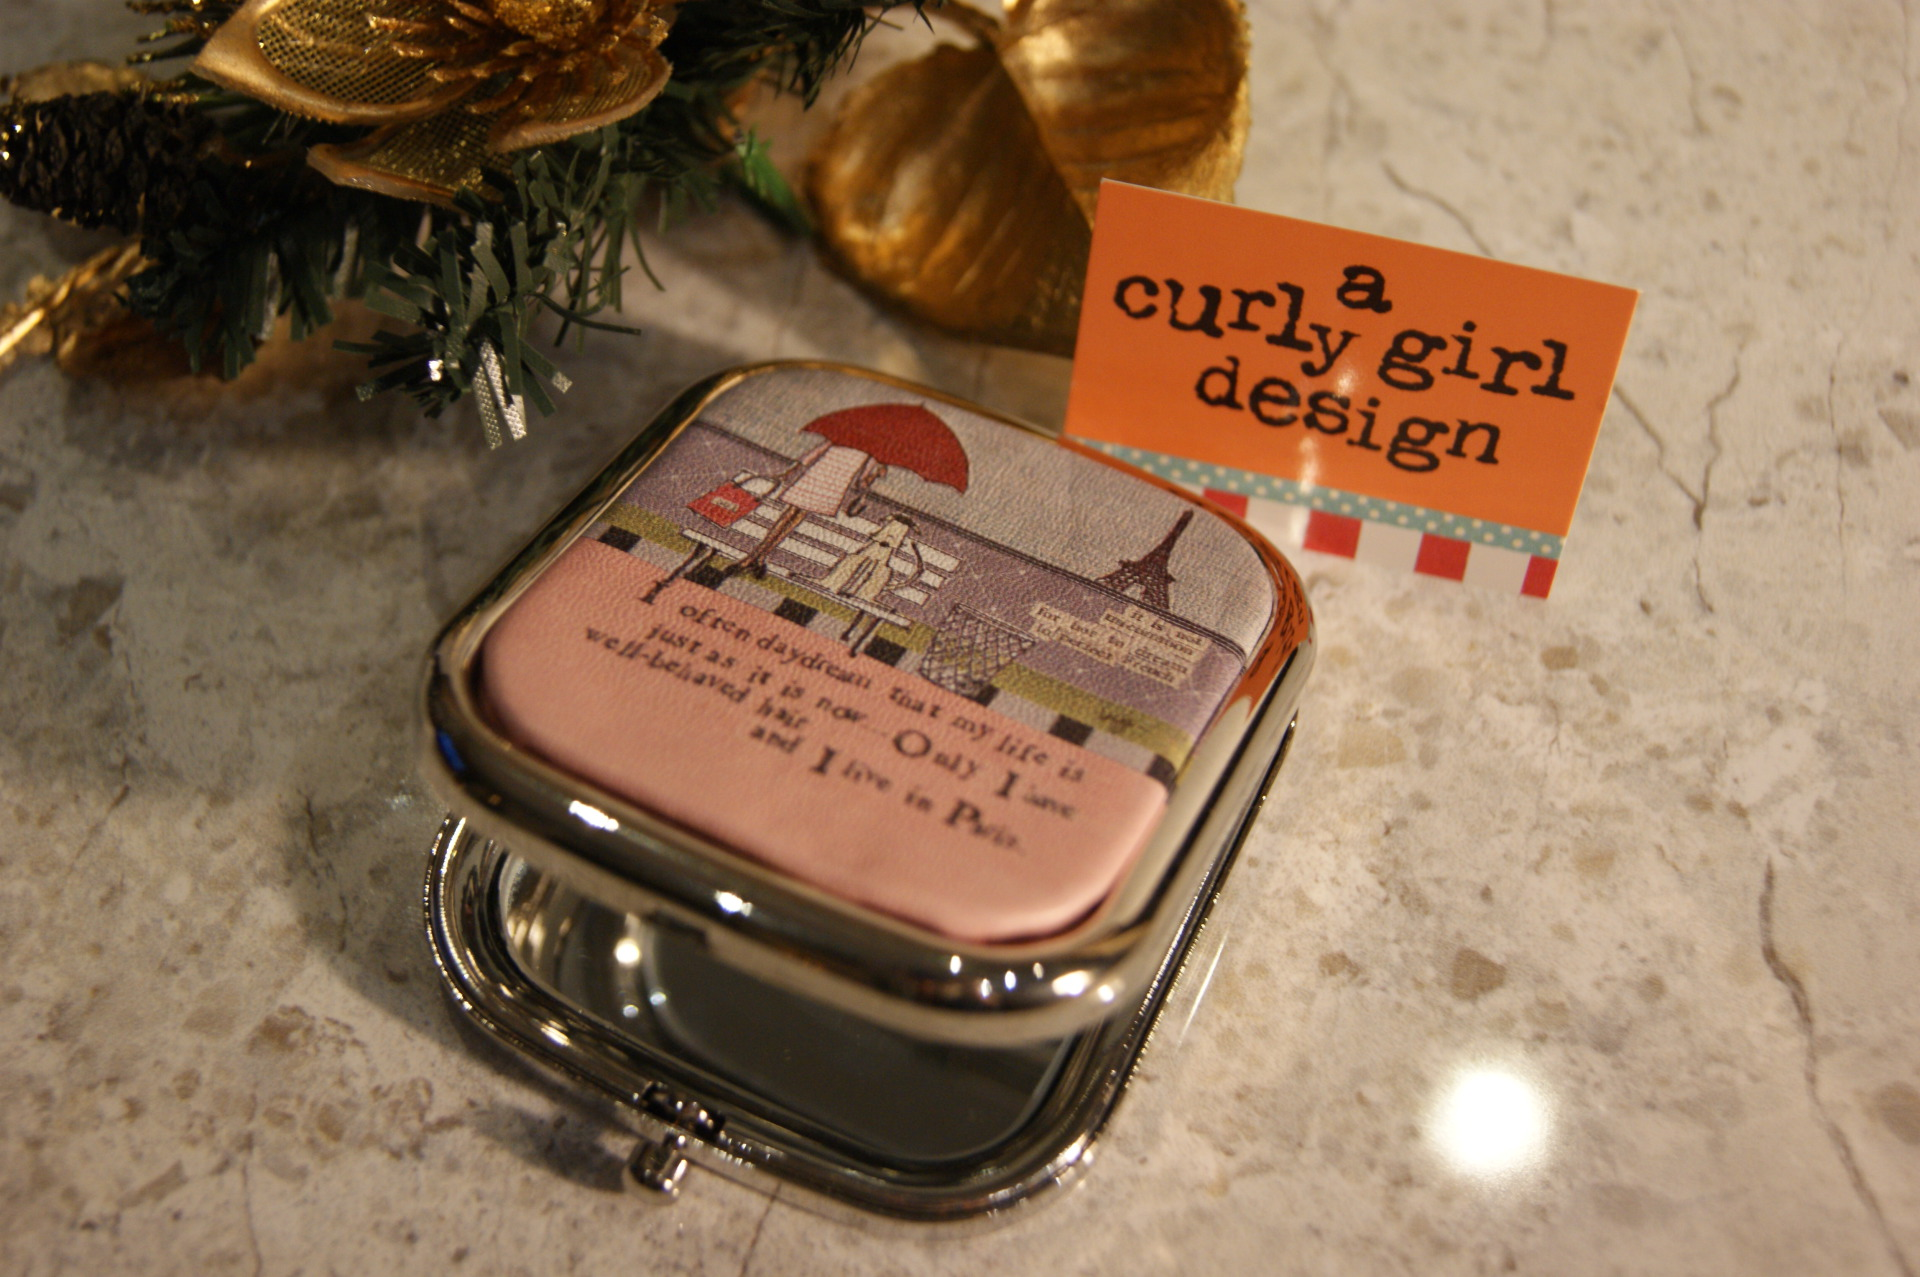 Really Good UK – Curly Girl Compact Mirror